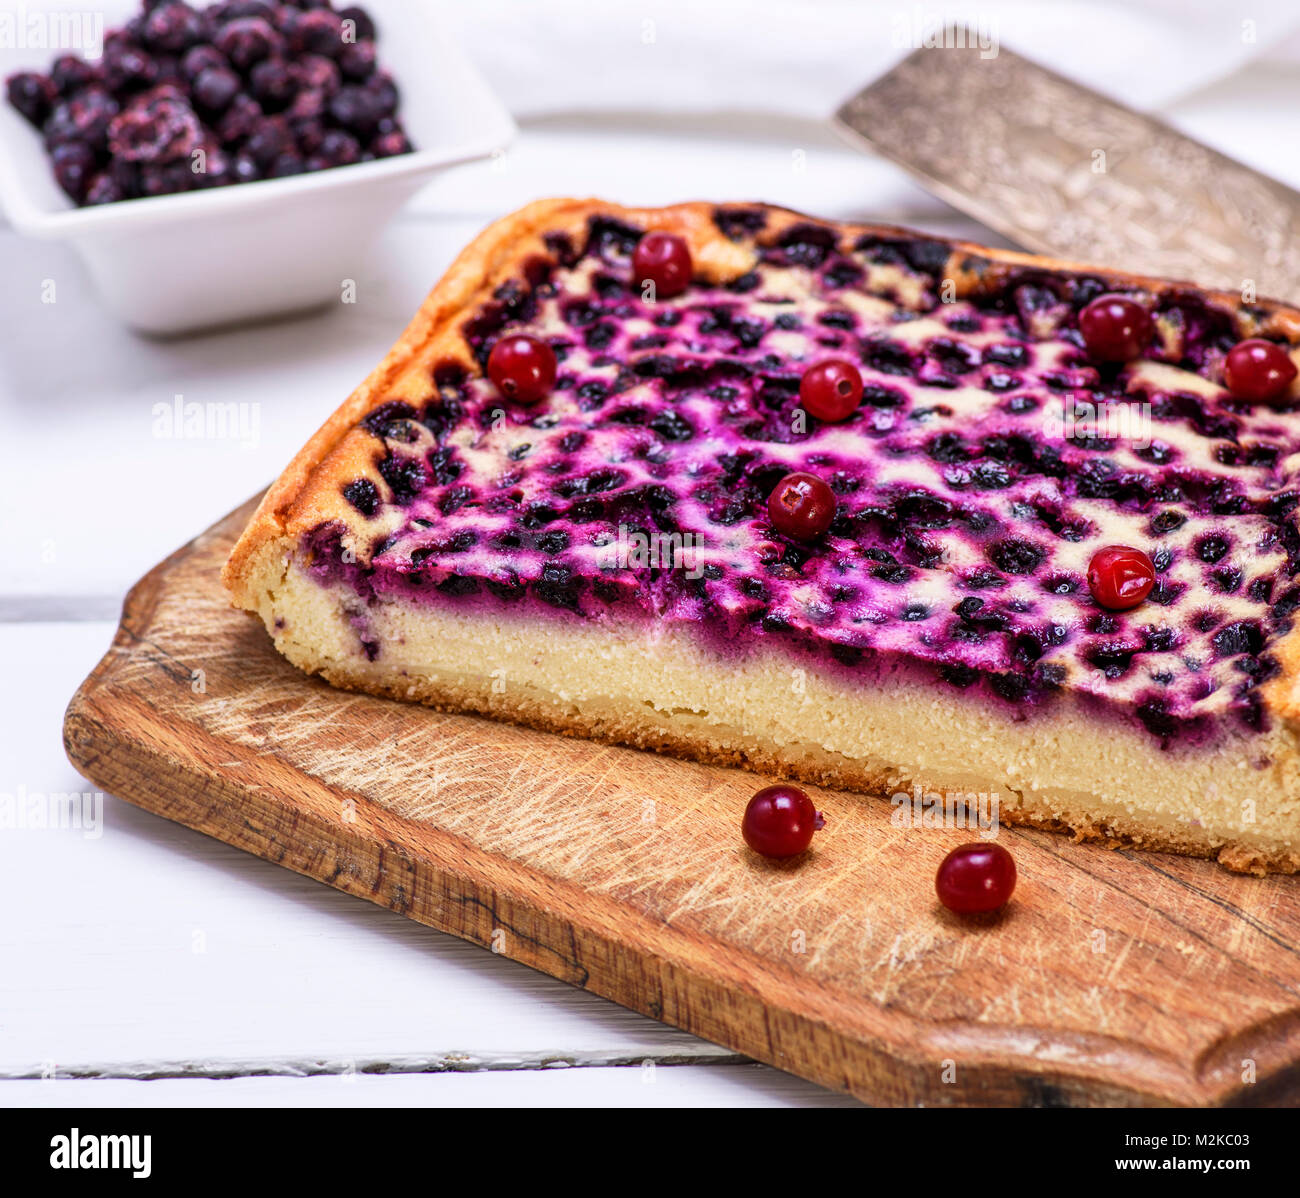 Cottage cheese and berry pie: how to make such baked goods 25